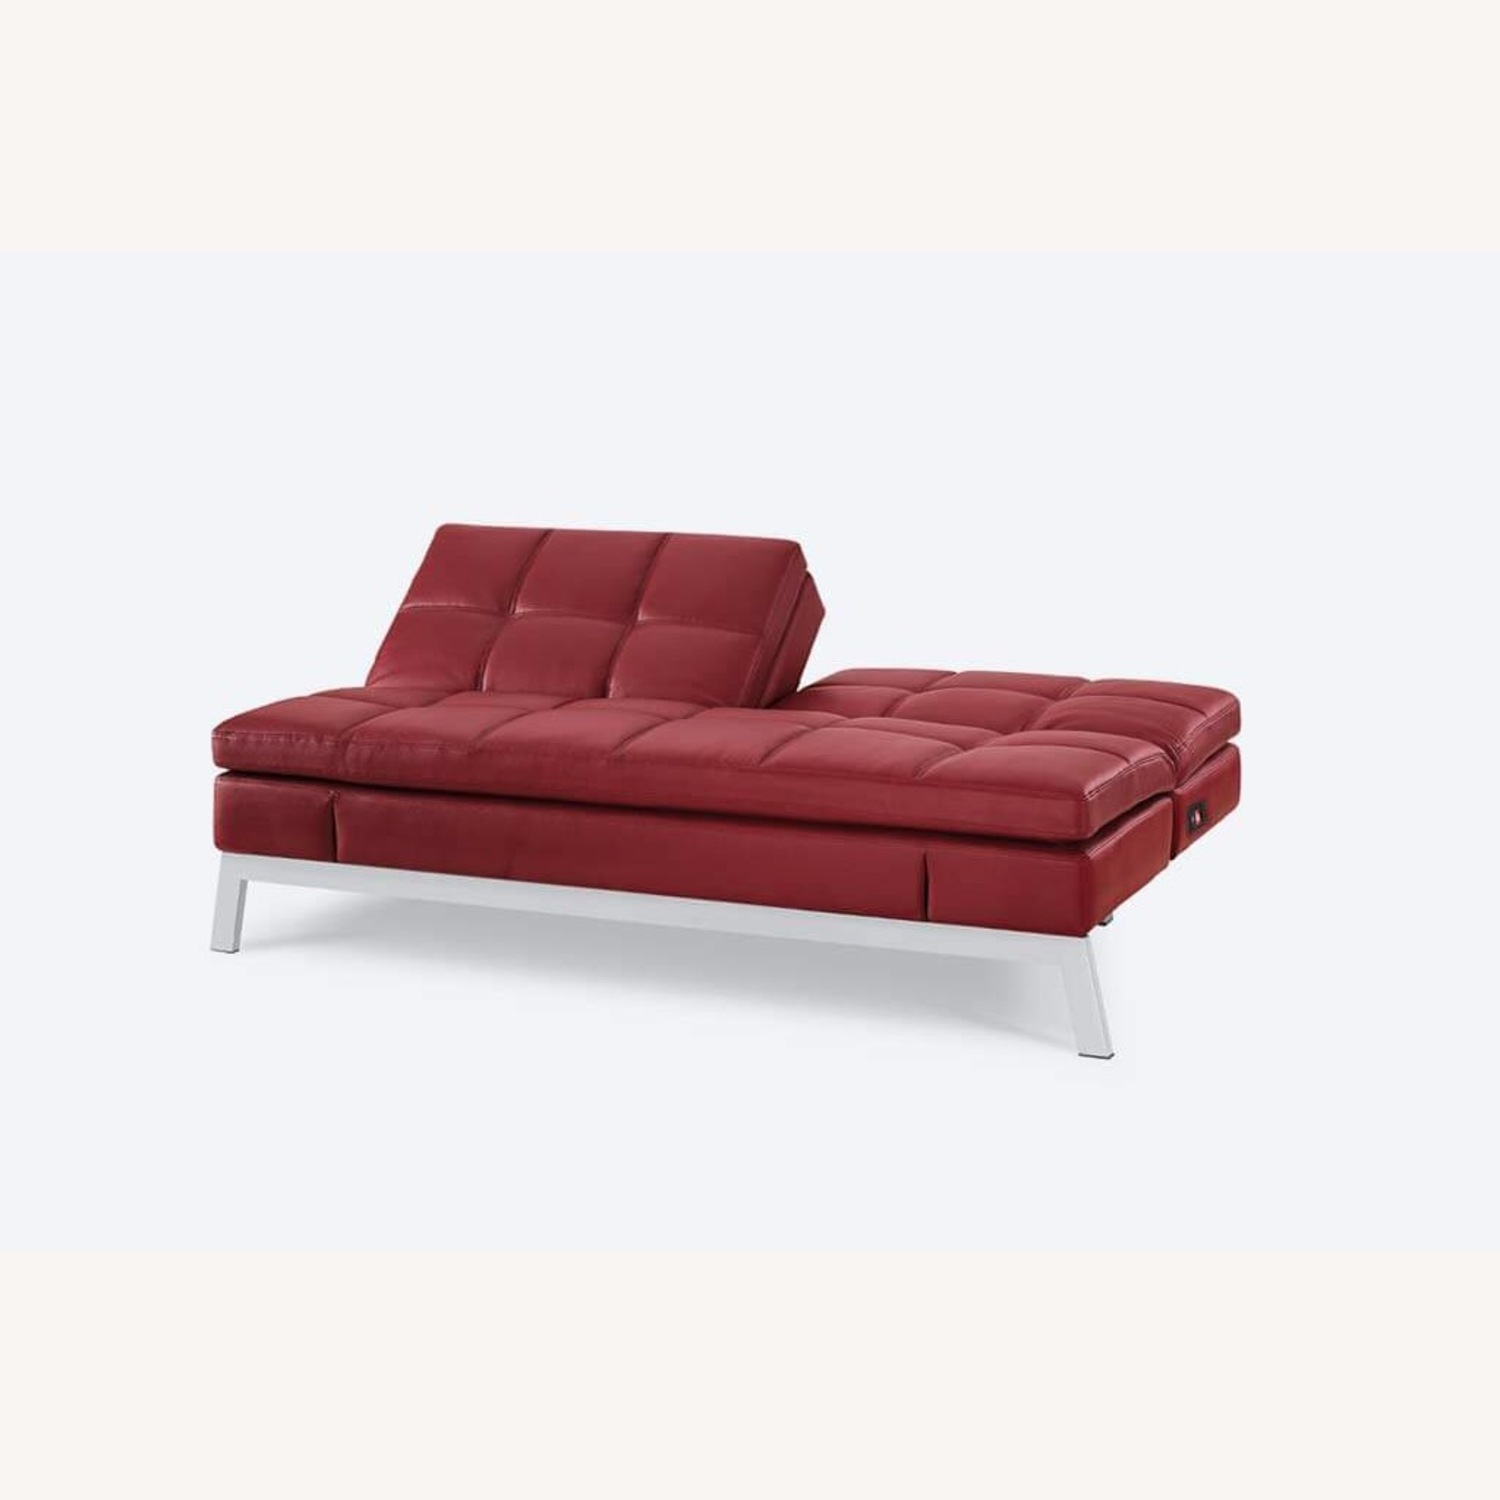 Coddle Red Leather Convertible Couch - image-6